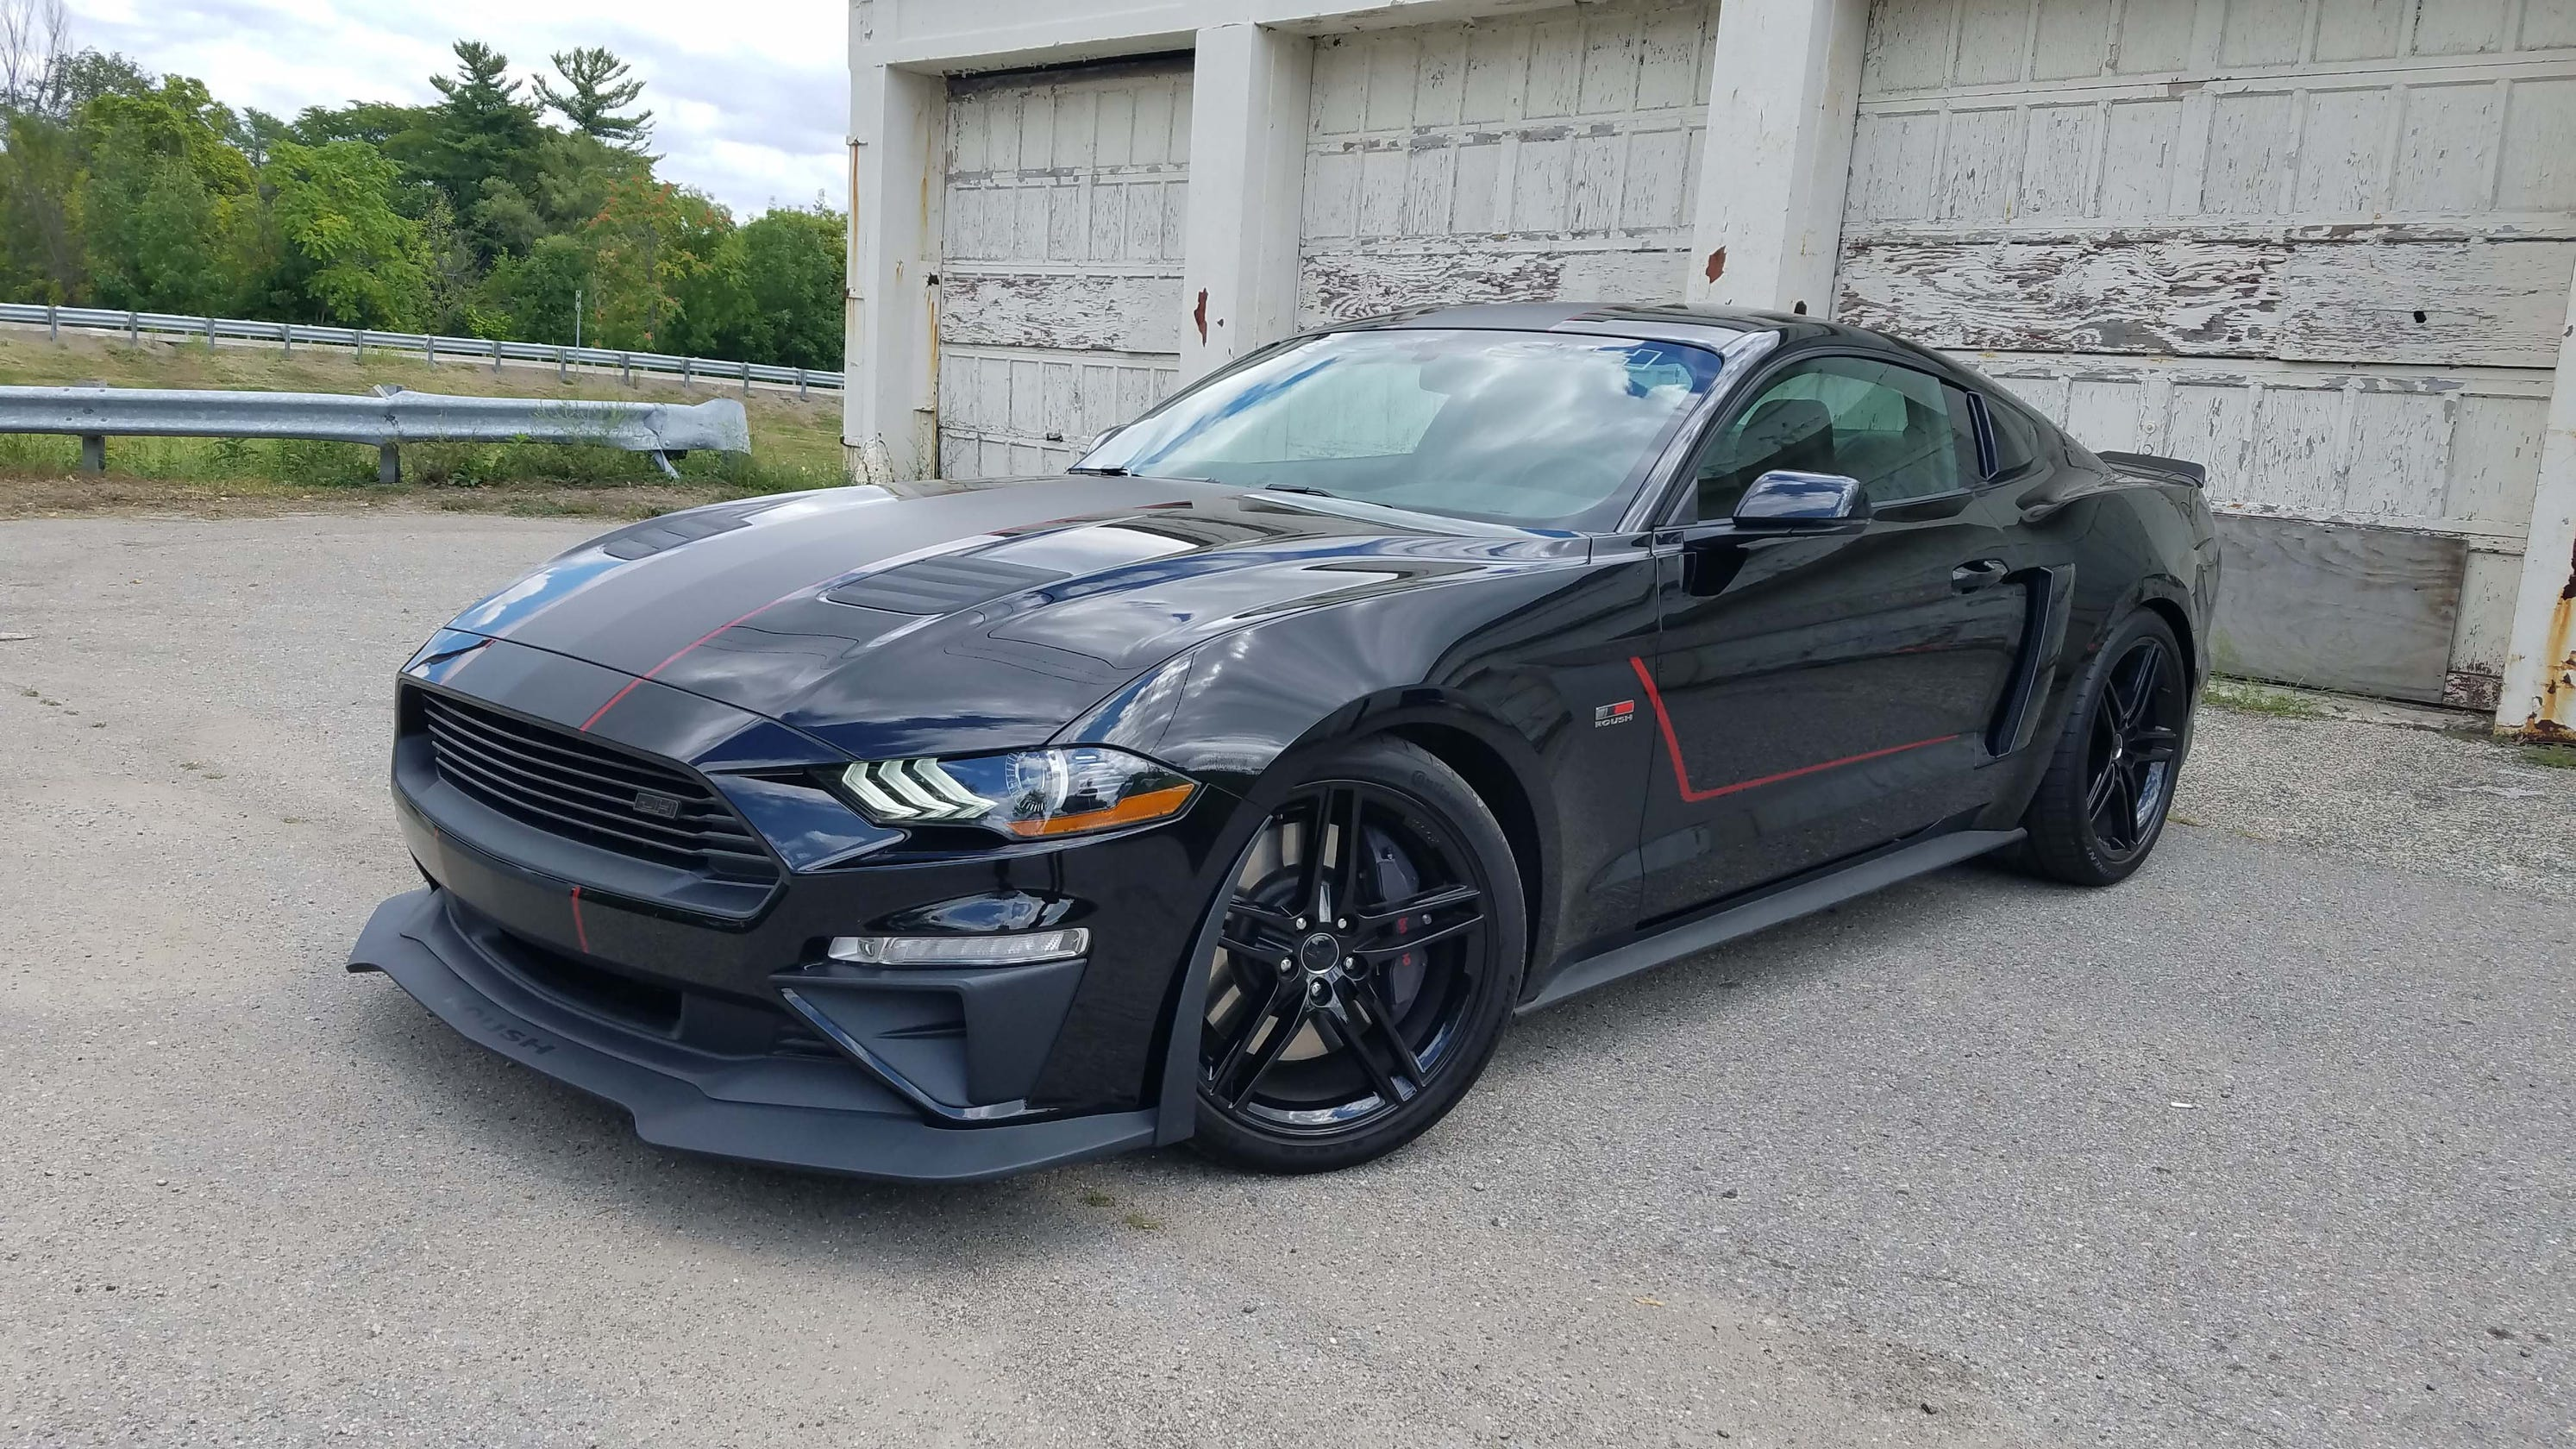 Roush jackhammer mustang joins the 700 hp club